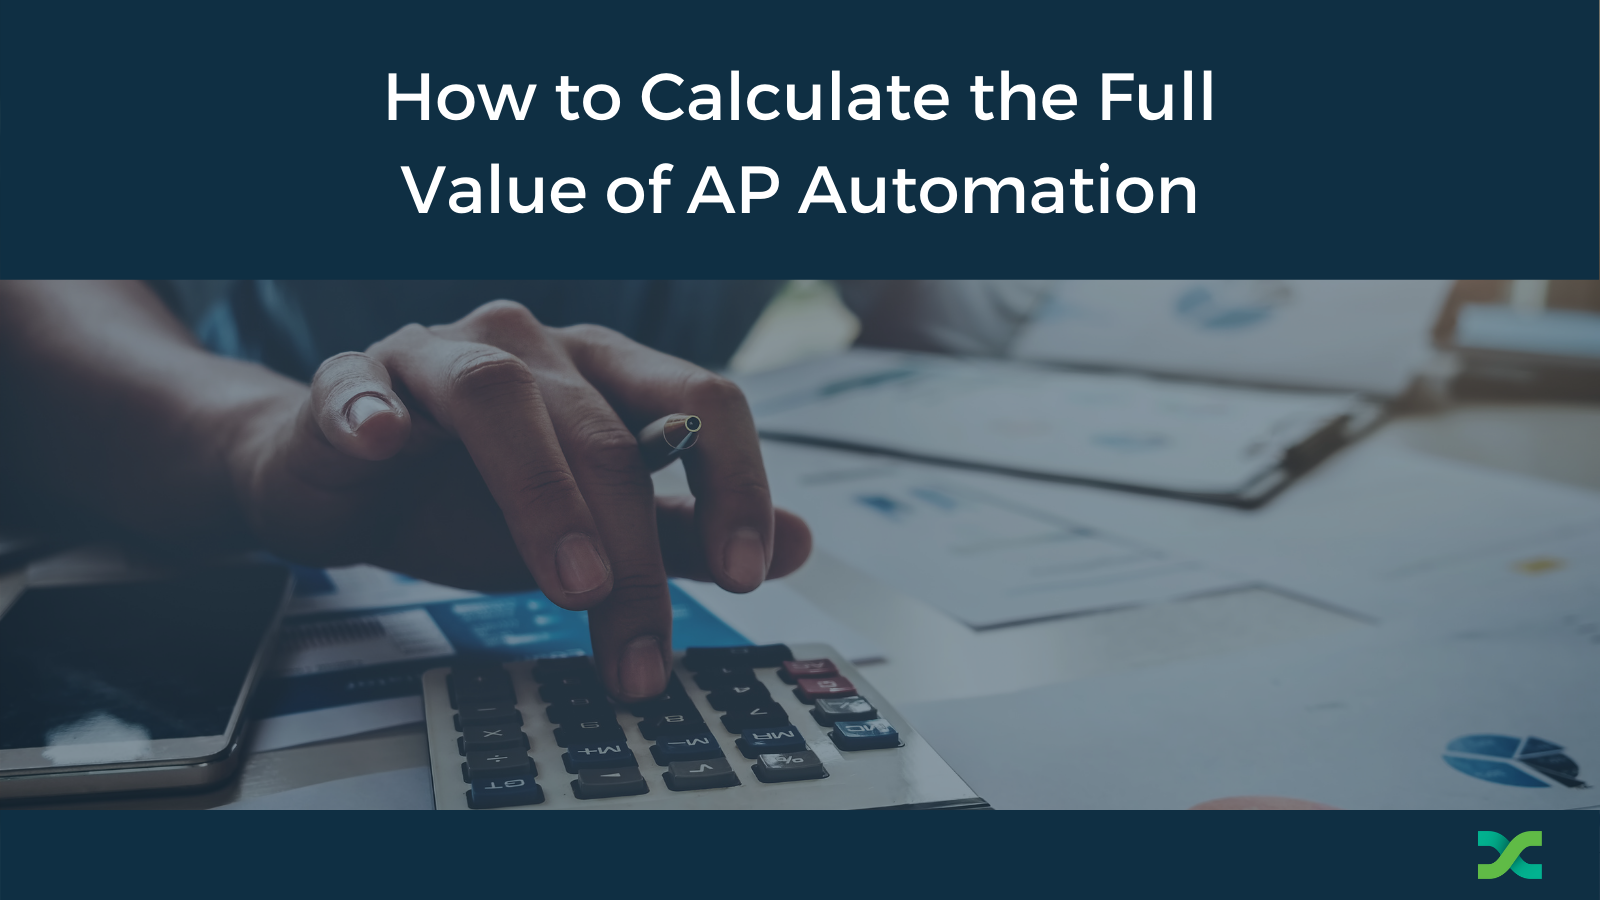 How to calculate the value of AP Automation for your organization